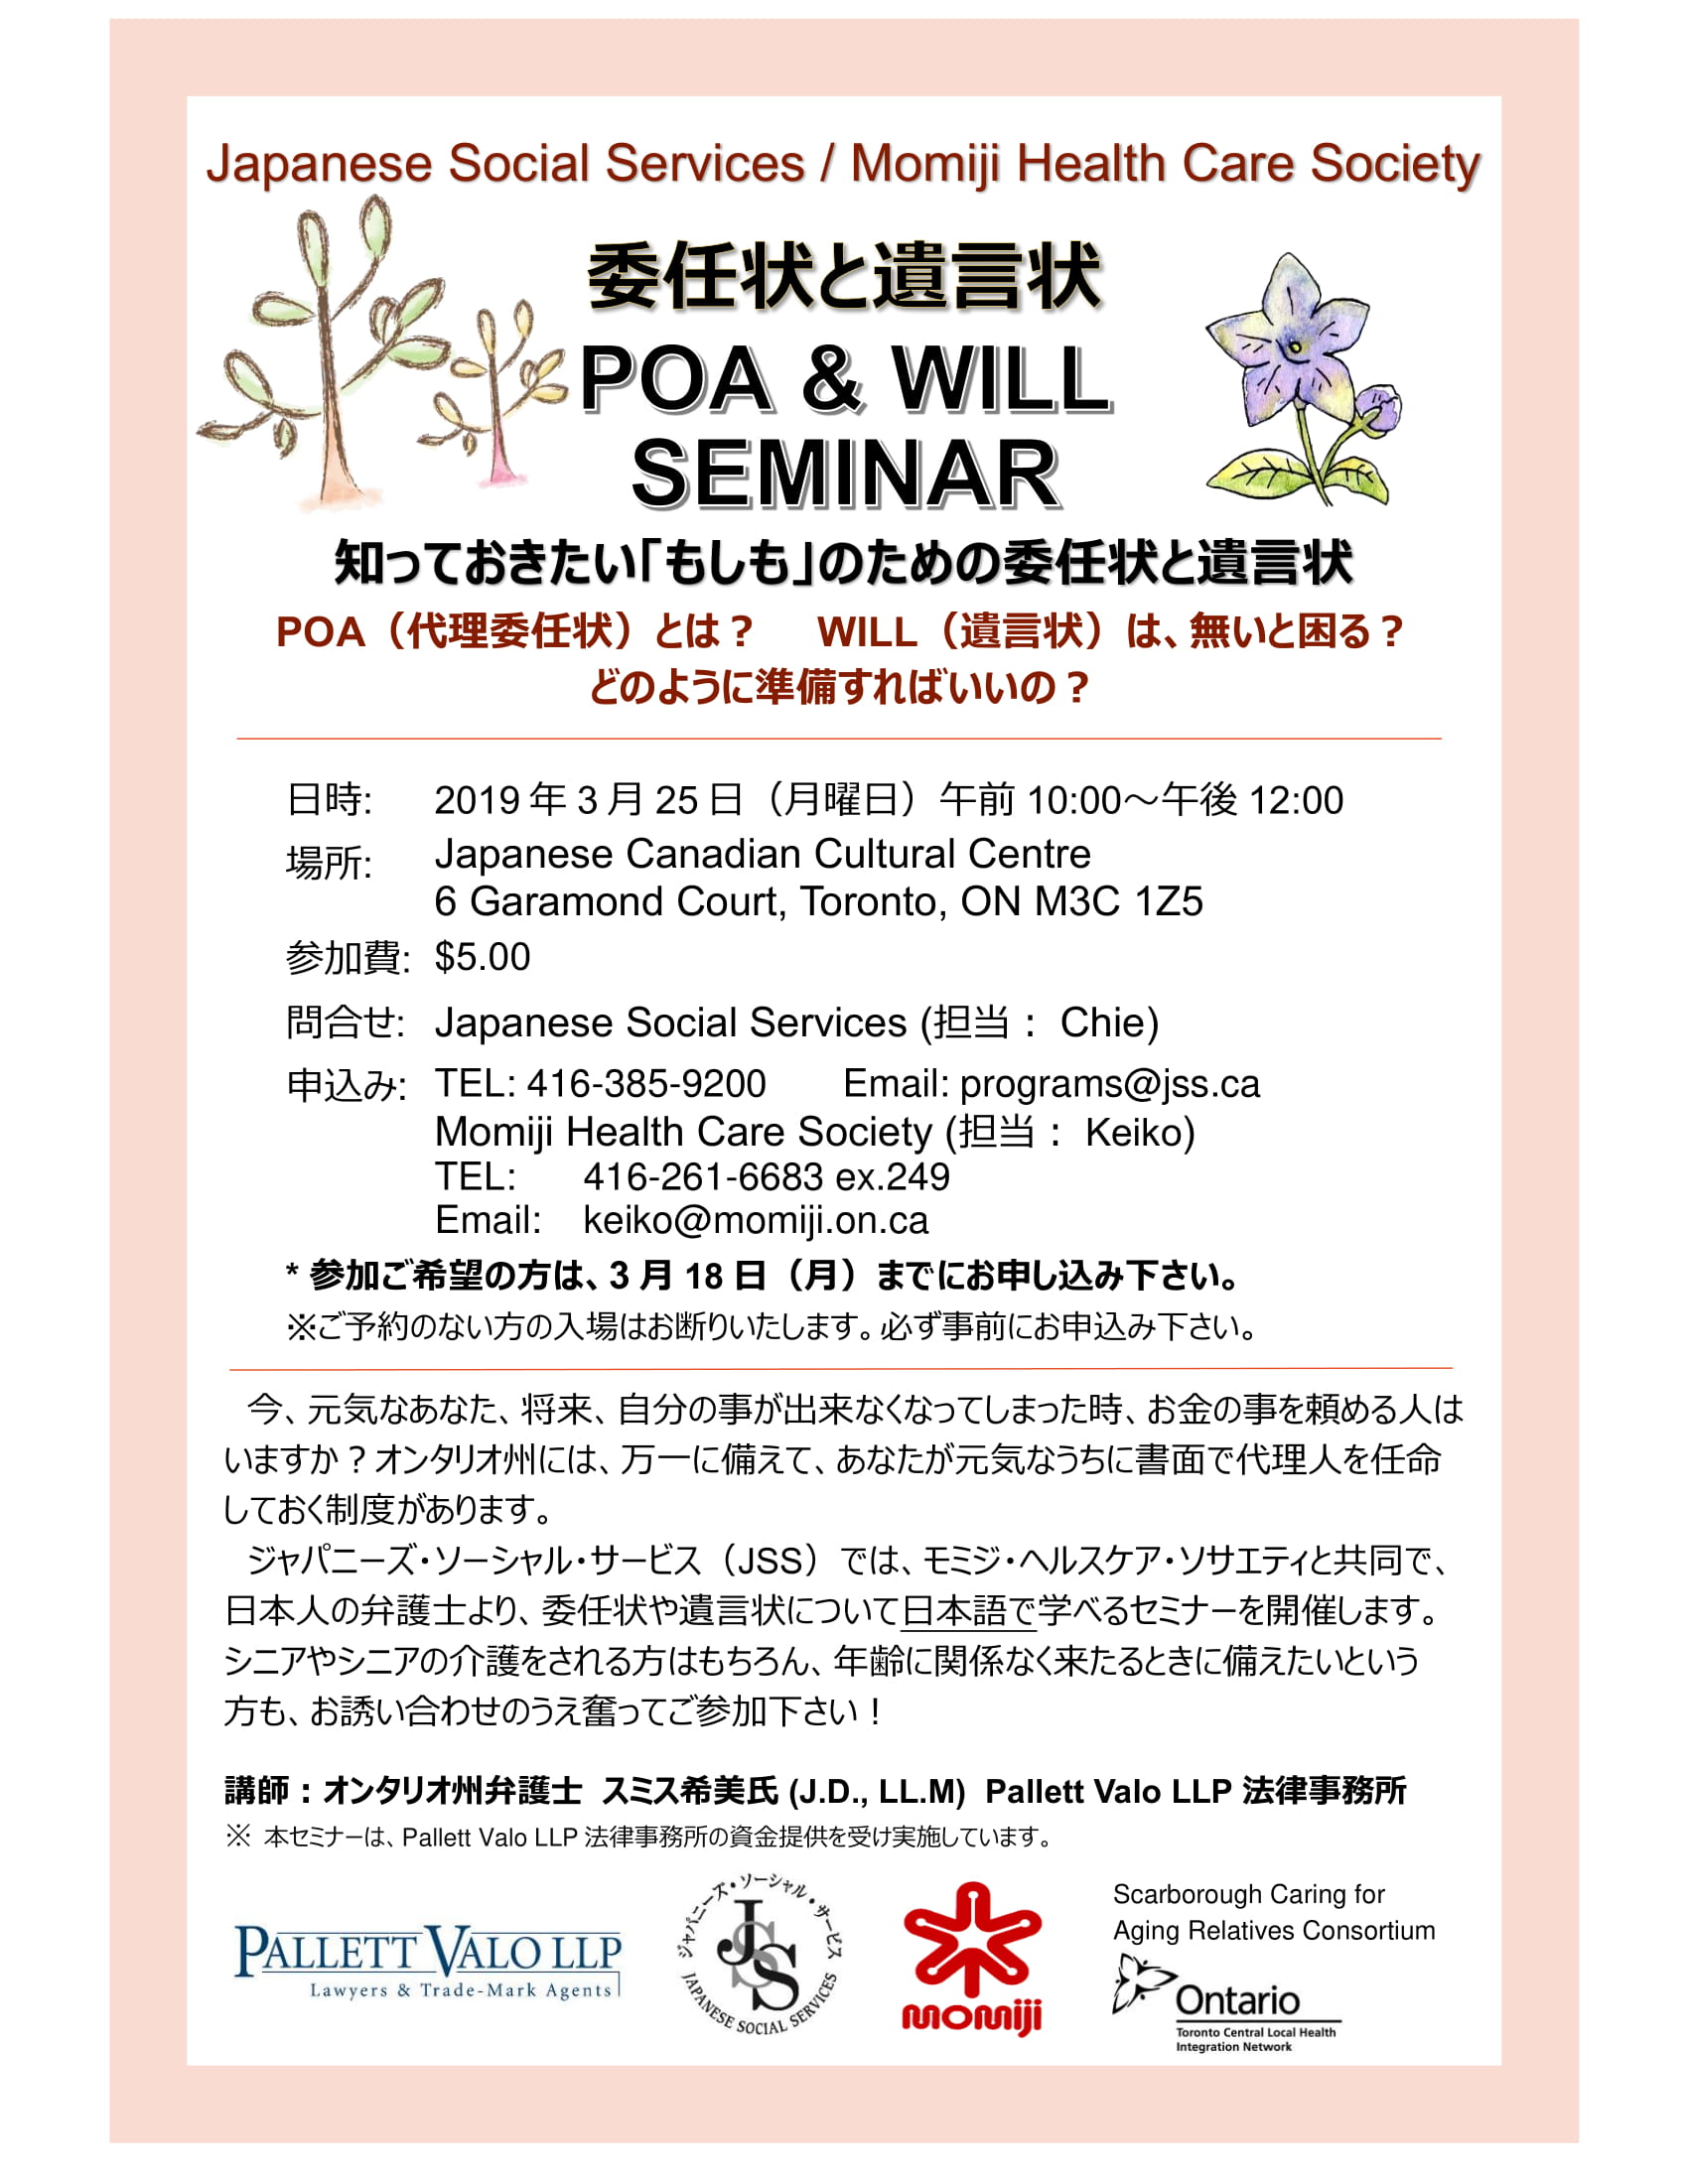 Mar 25: POA and Will Seminar 2019 - Japanese Social Services